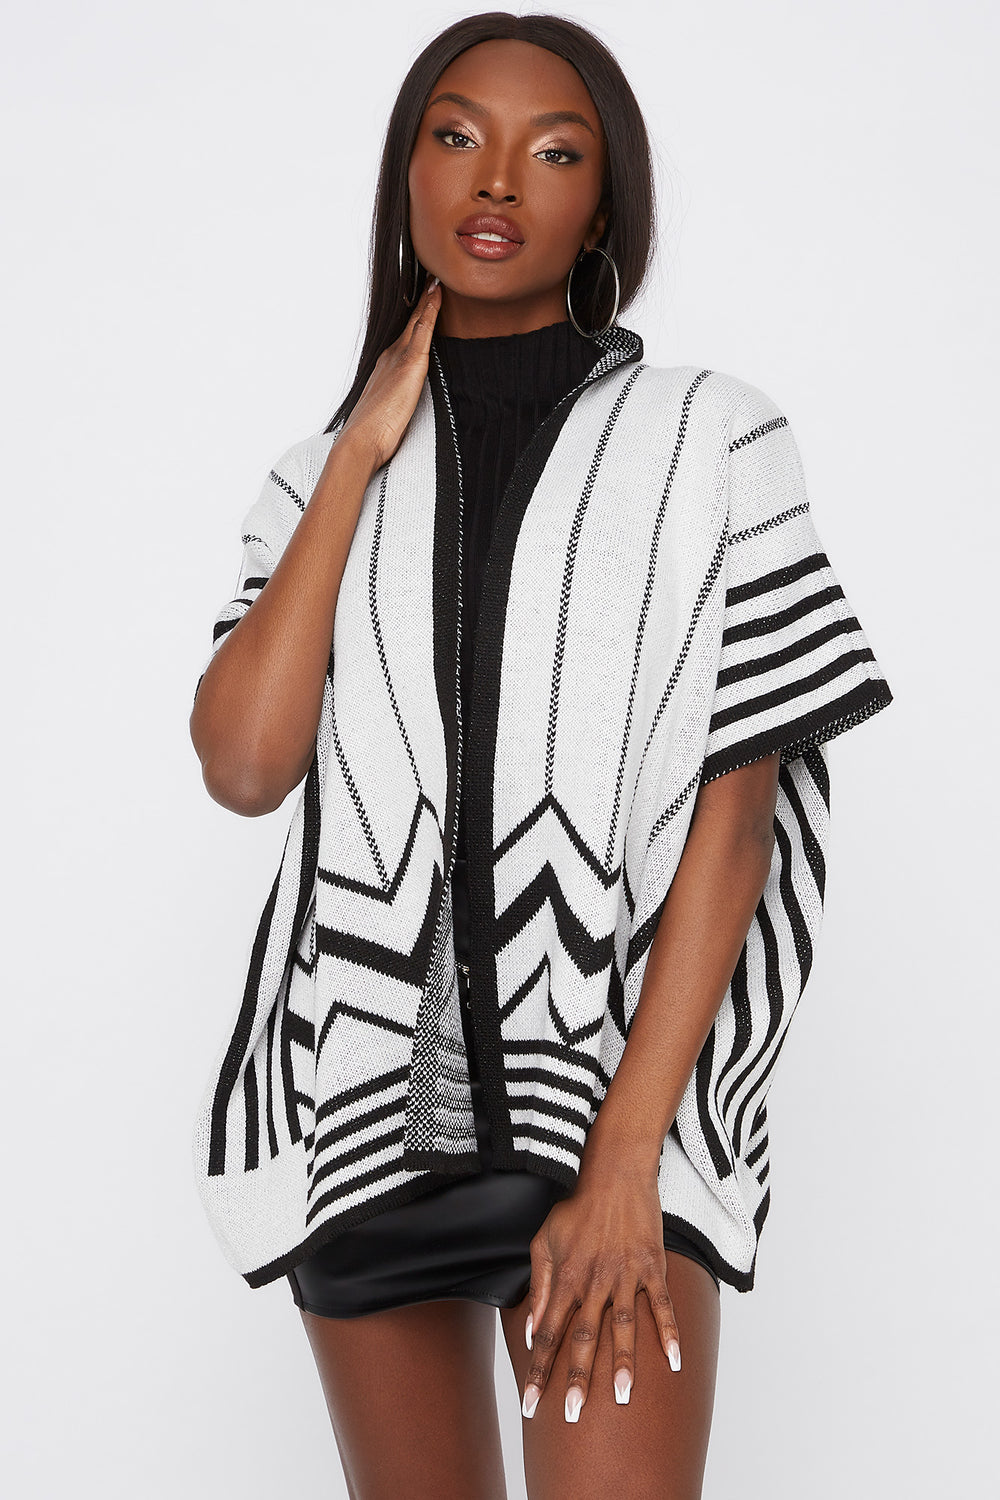 Striped Short Sleeve Cape Black with White